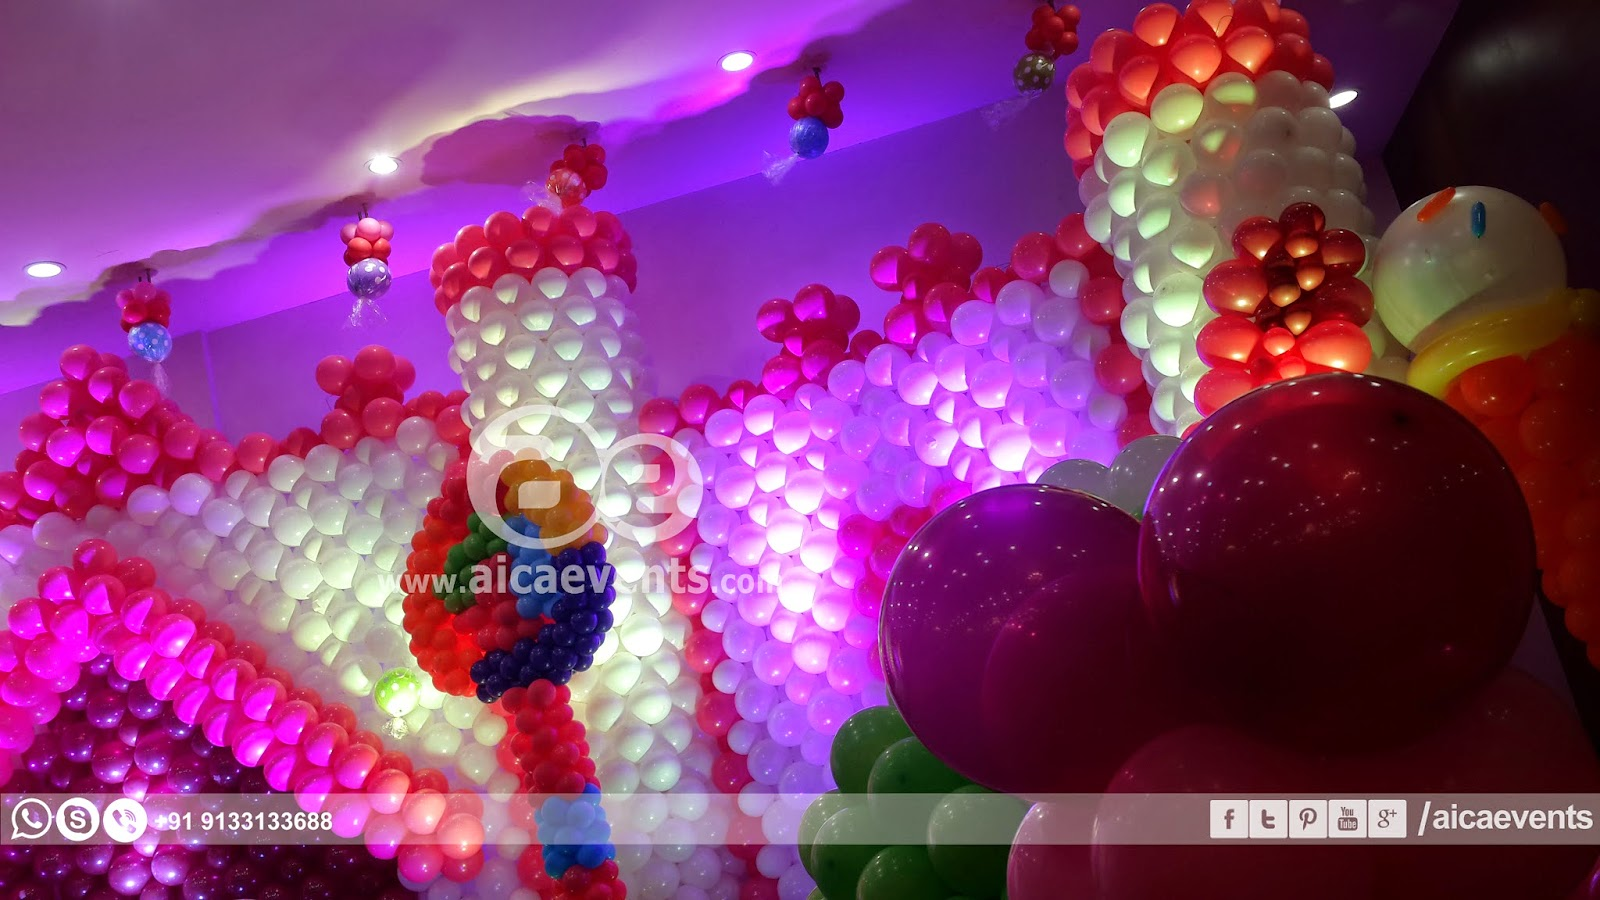 Aicaevents india castle with balloon wall decoration for Party wall regulations